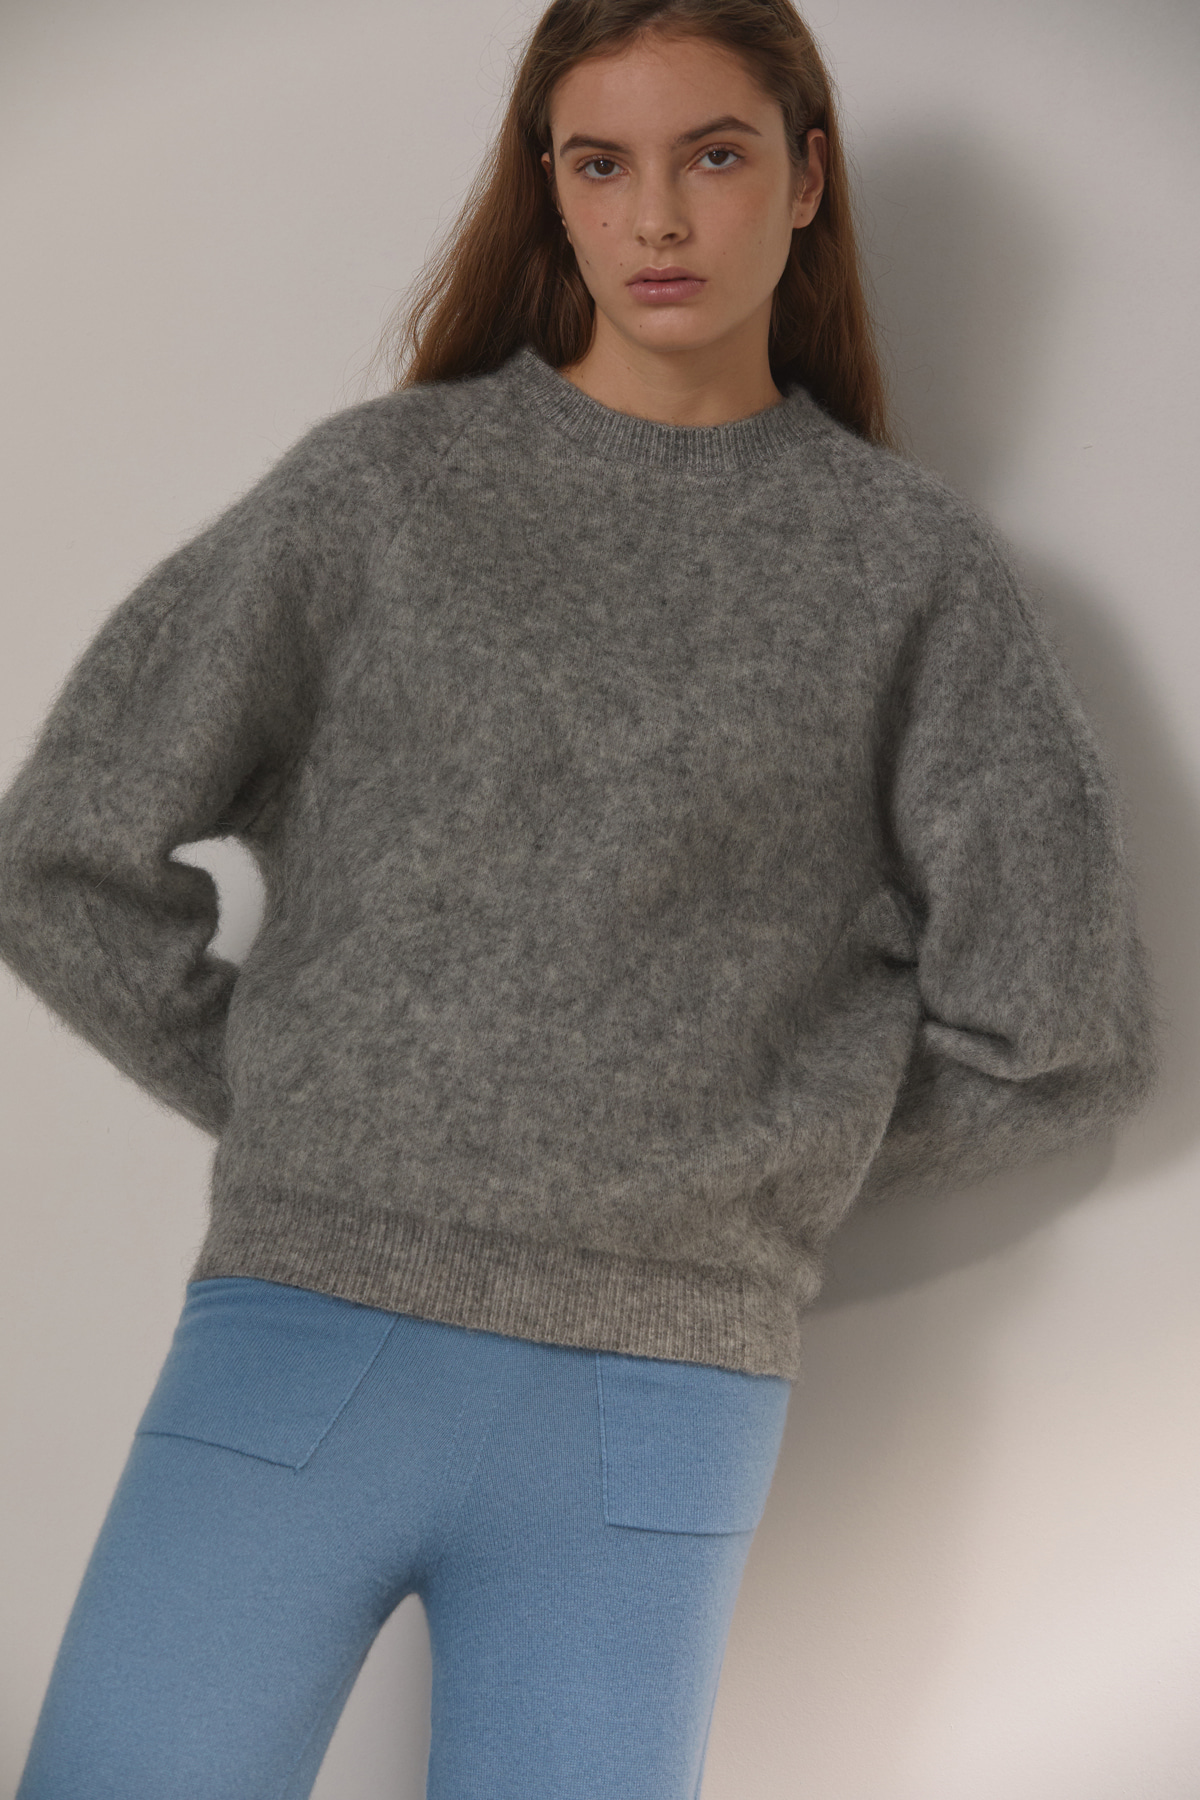 DEMERE MOHAIR CREW-NECK KNIT (GRAY)